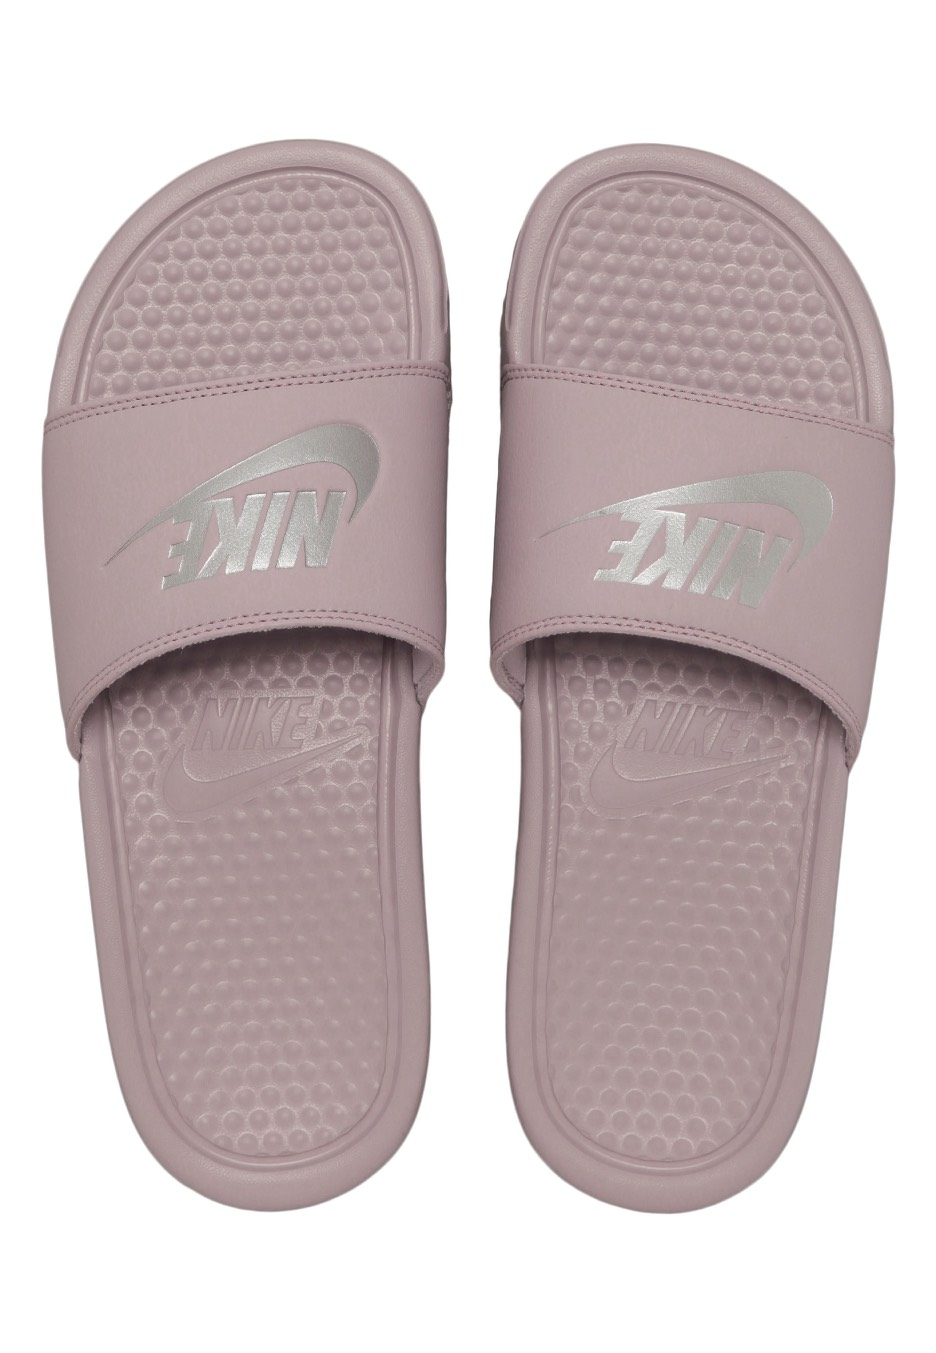 Nike - Benassi Just Do It Particle Rose Metallic Silver - Sandals -  Impericon.com US f63c1b38a566